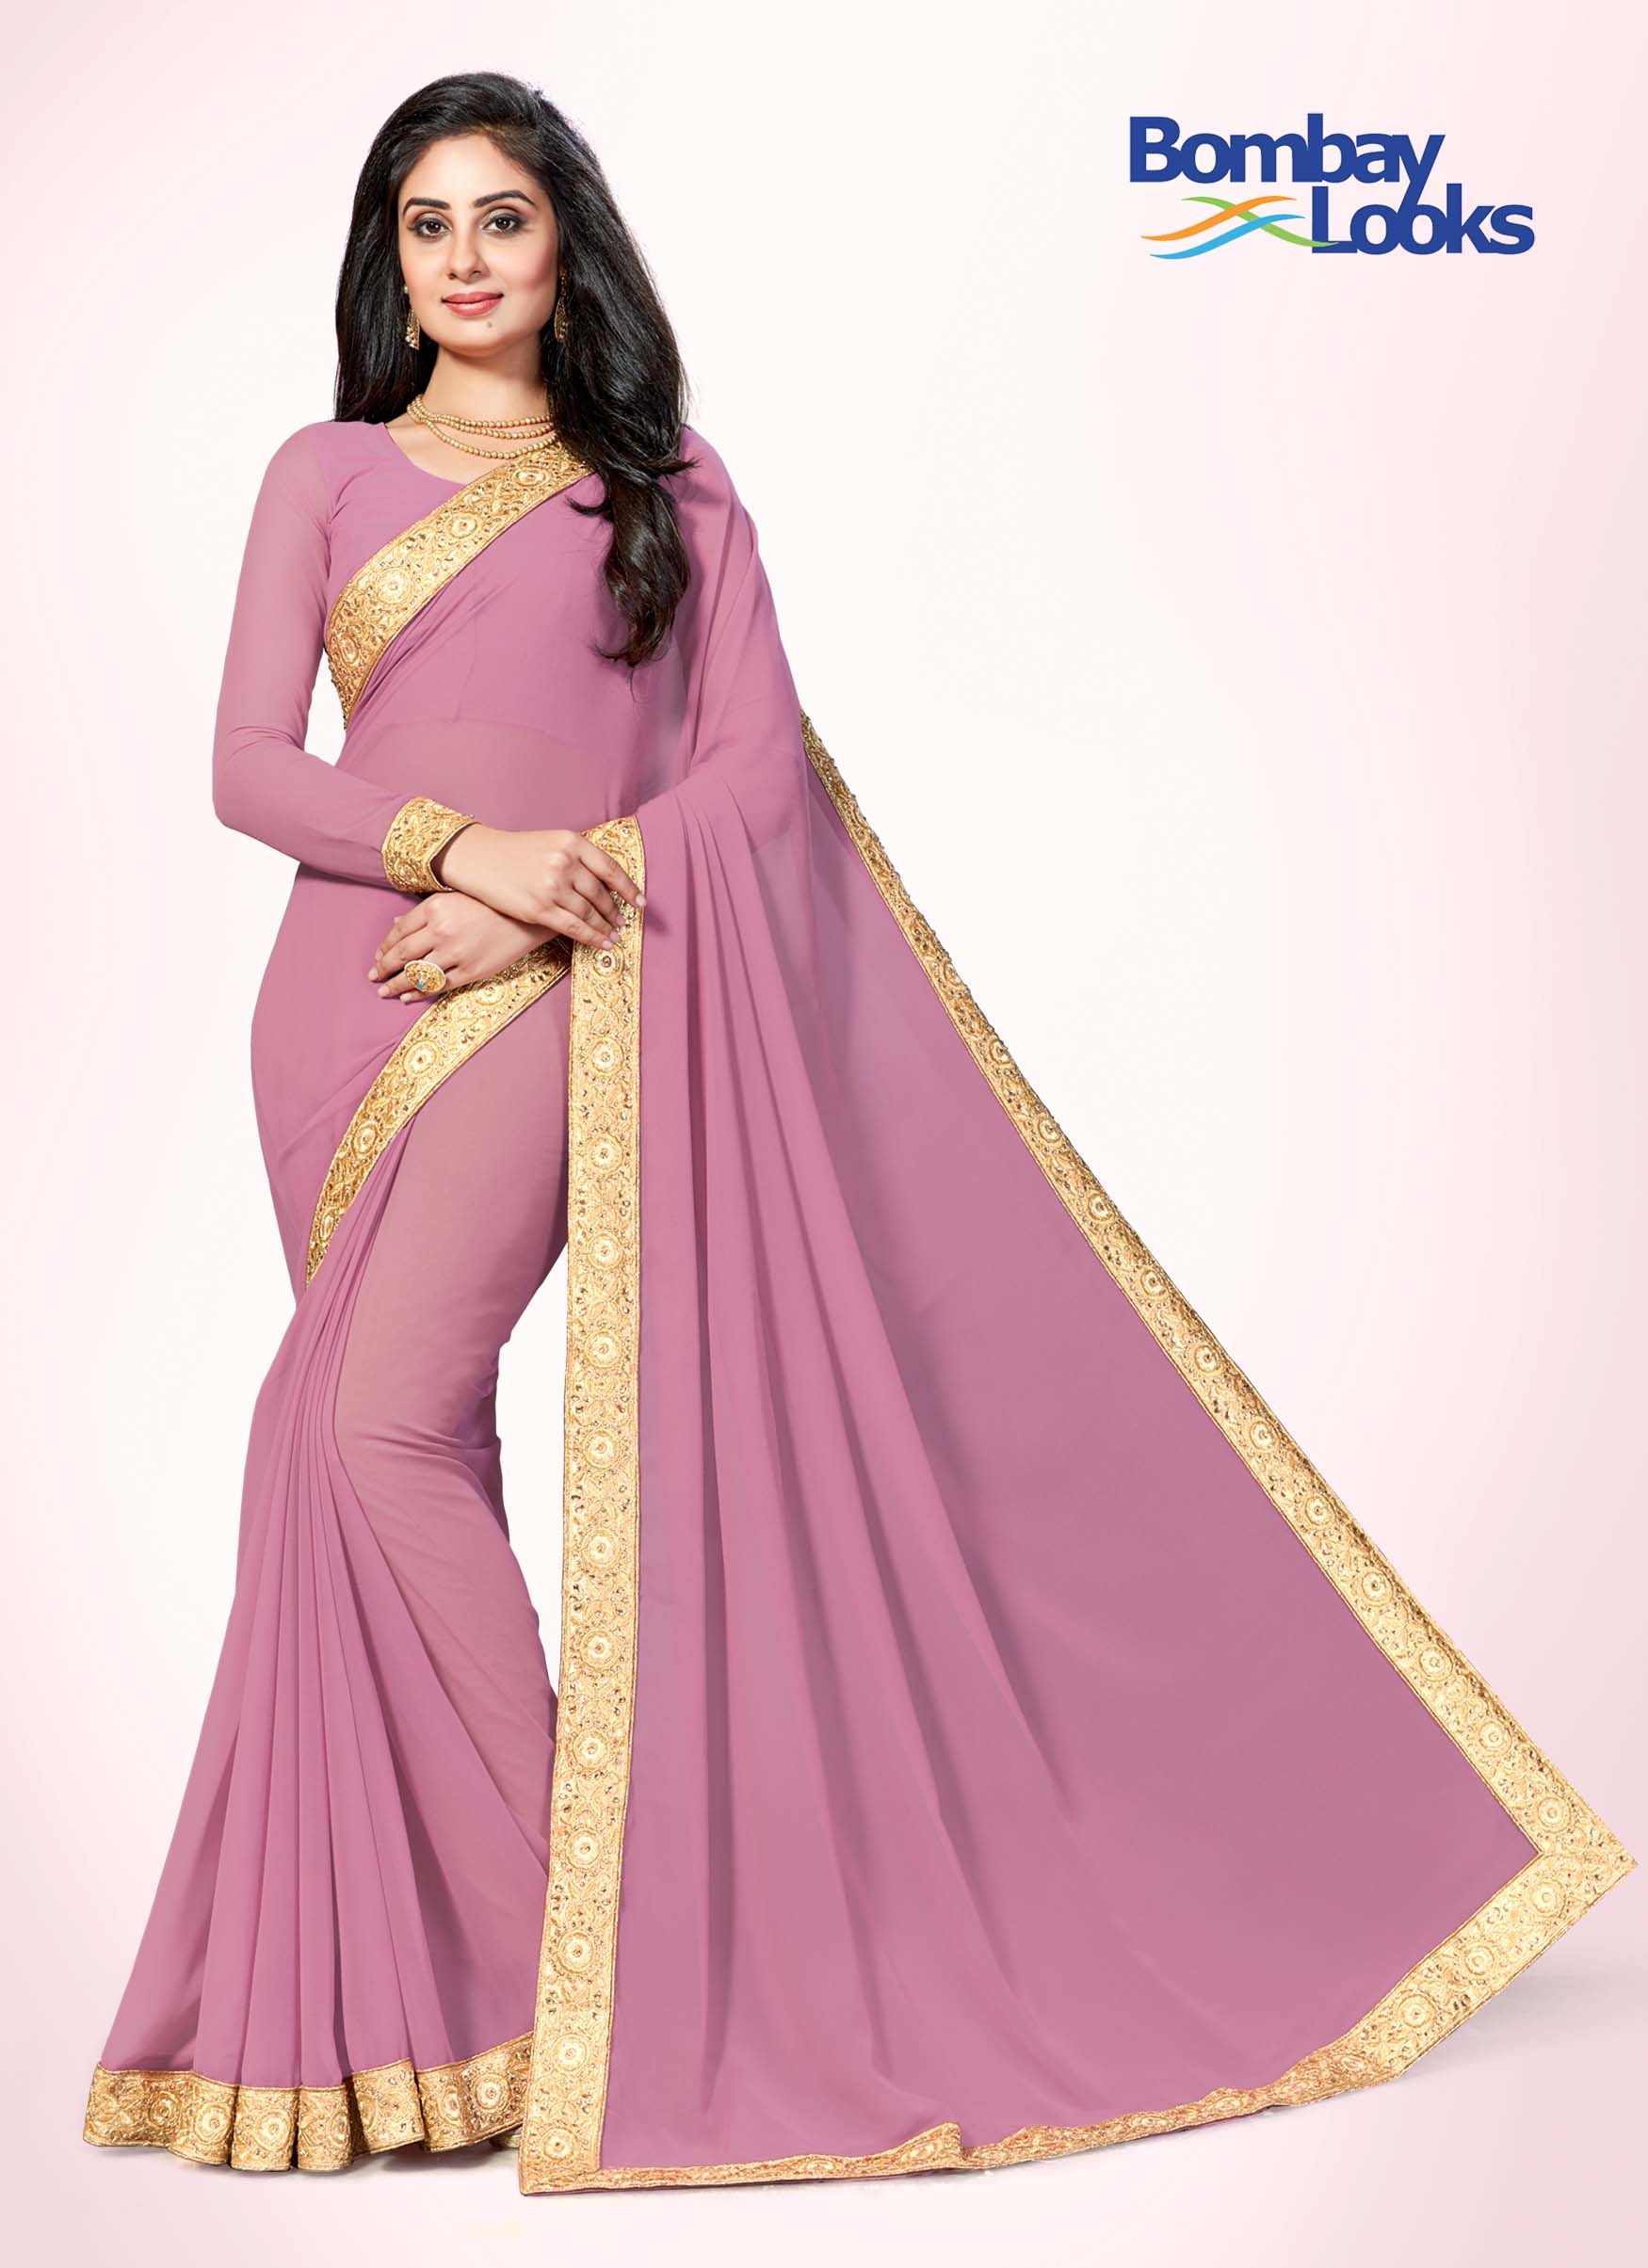 Dusty pink gala saree with delicate gold border